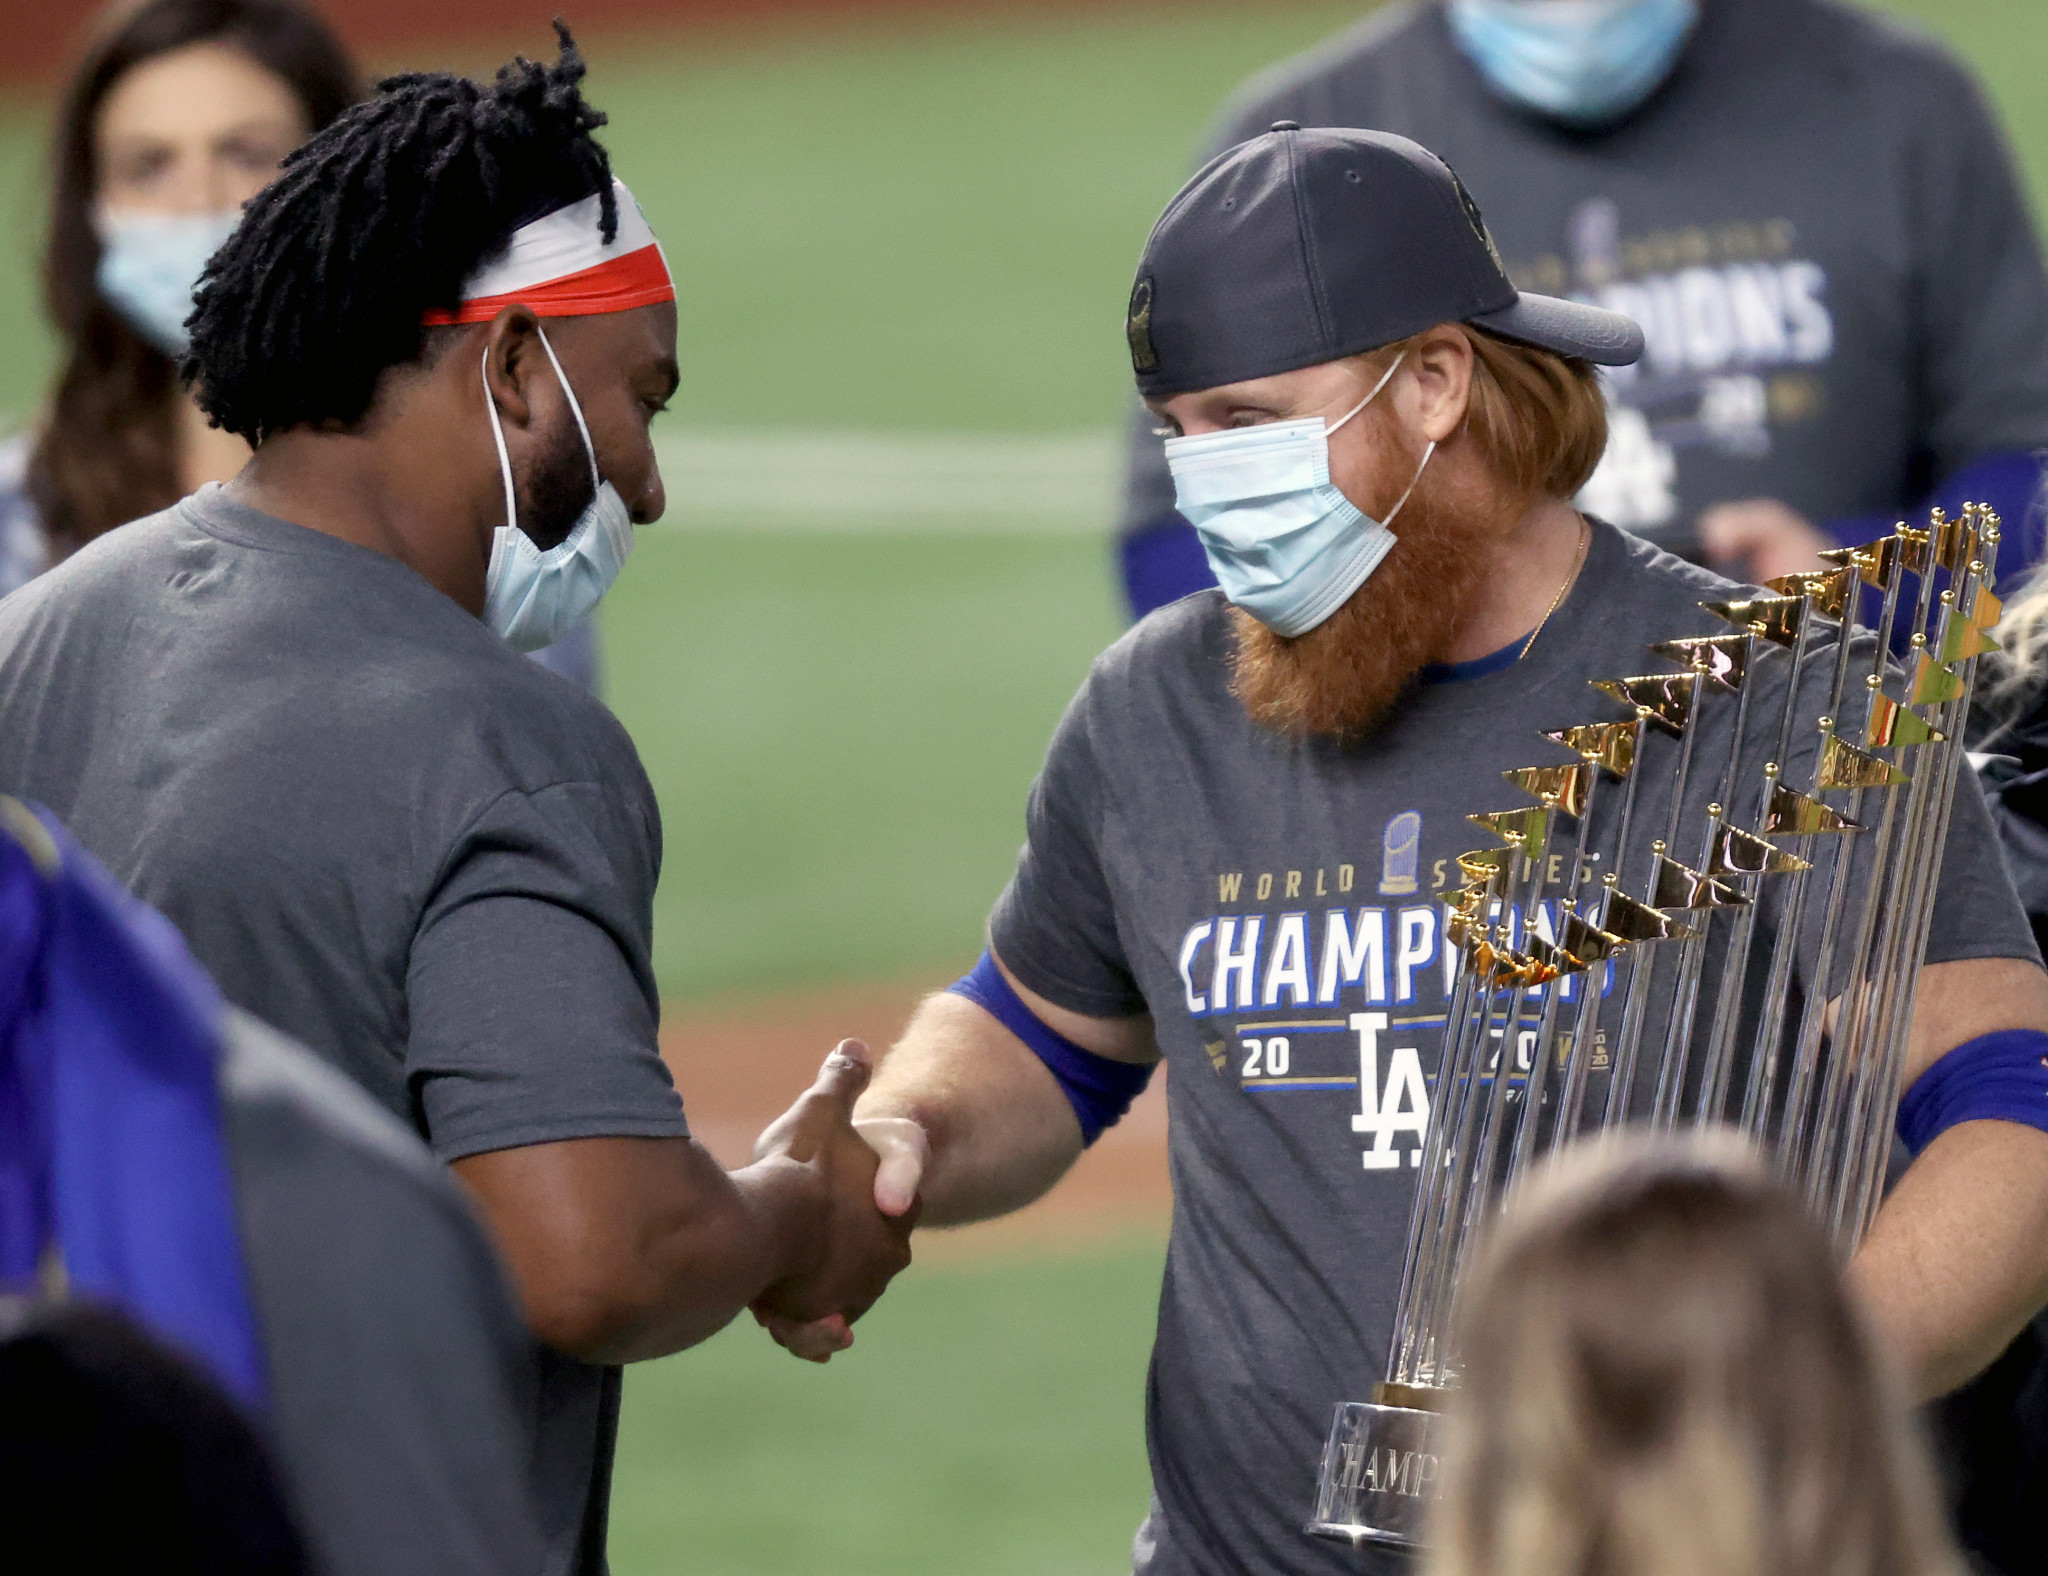 Justin Turner, right, shakes hands with a colleague despite knowing he has coronavirus ©Getty Images